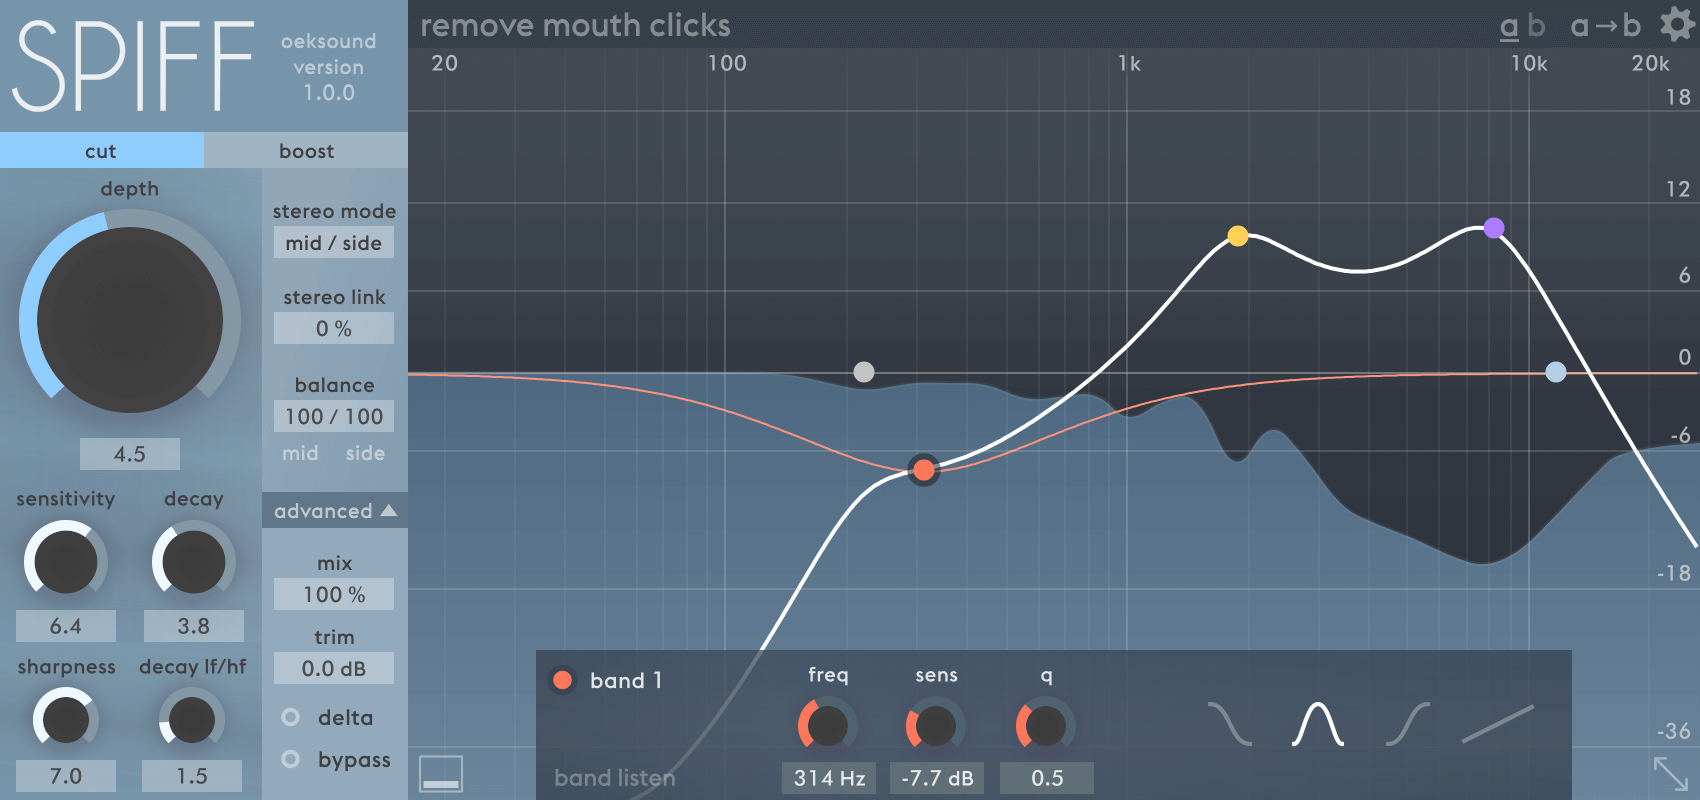 oeksound | plug-ins you actually need